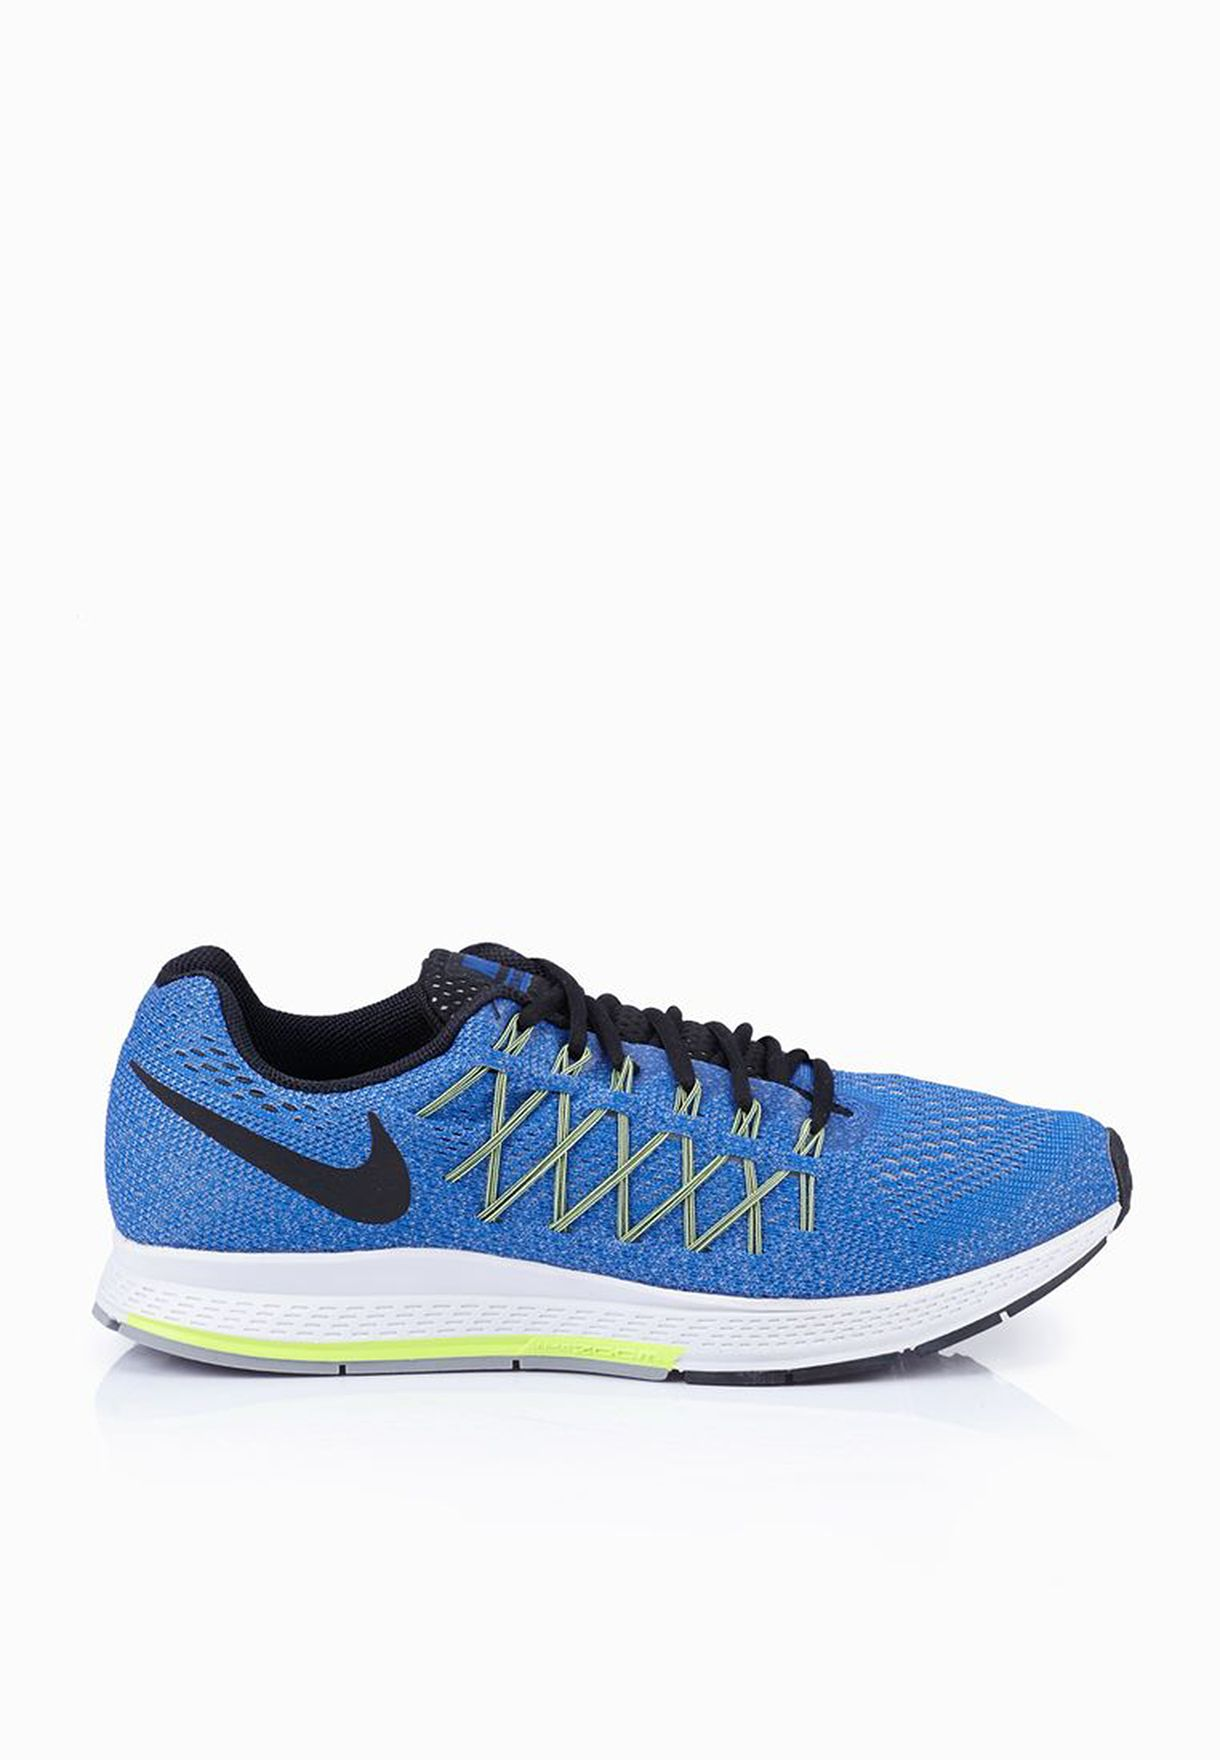 premium selection 24749 c44b8 Air Zoom Pegasus 32